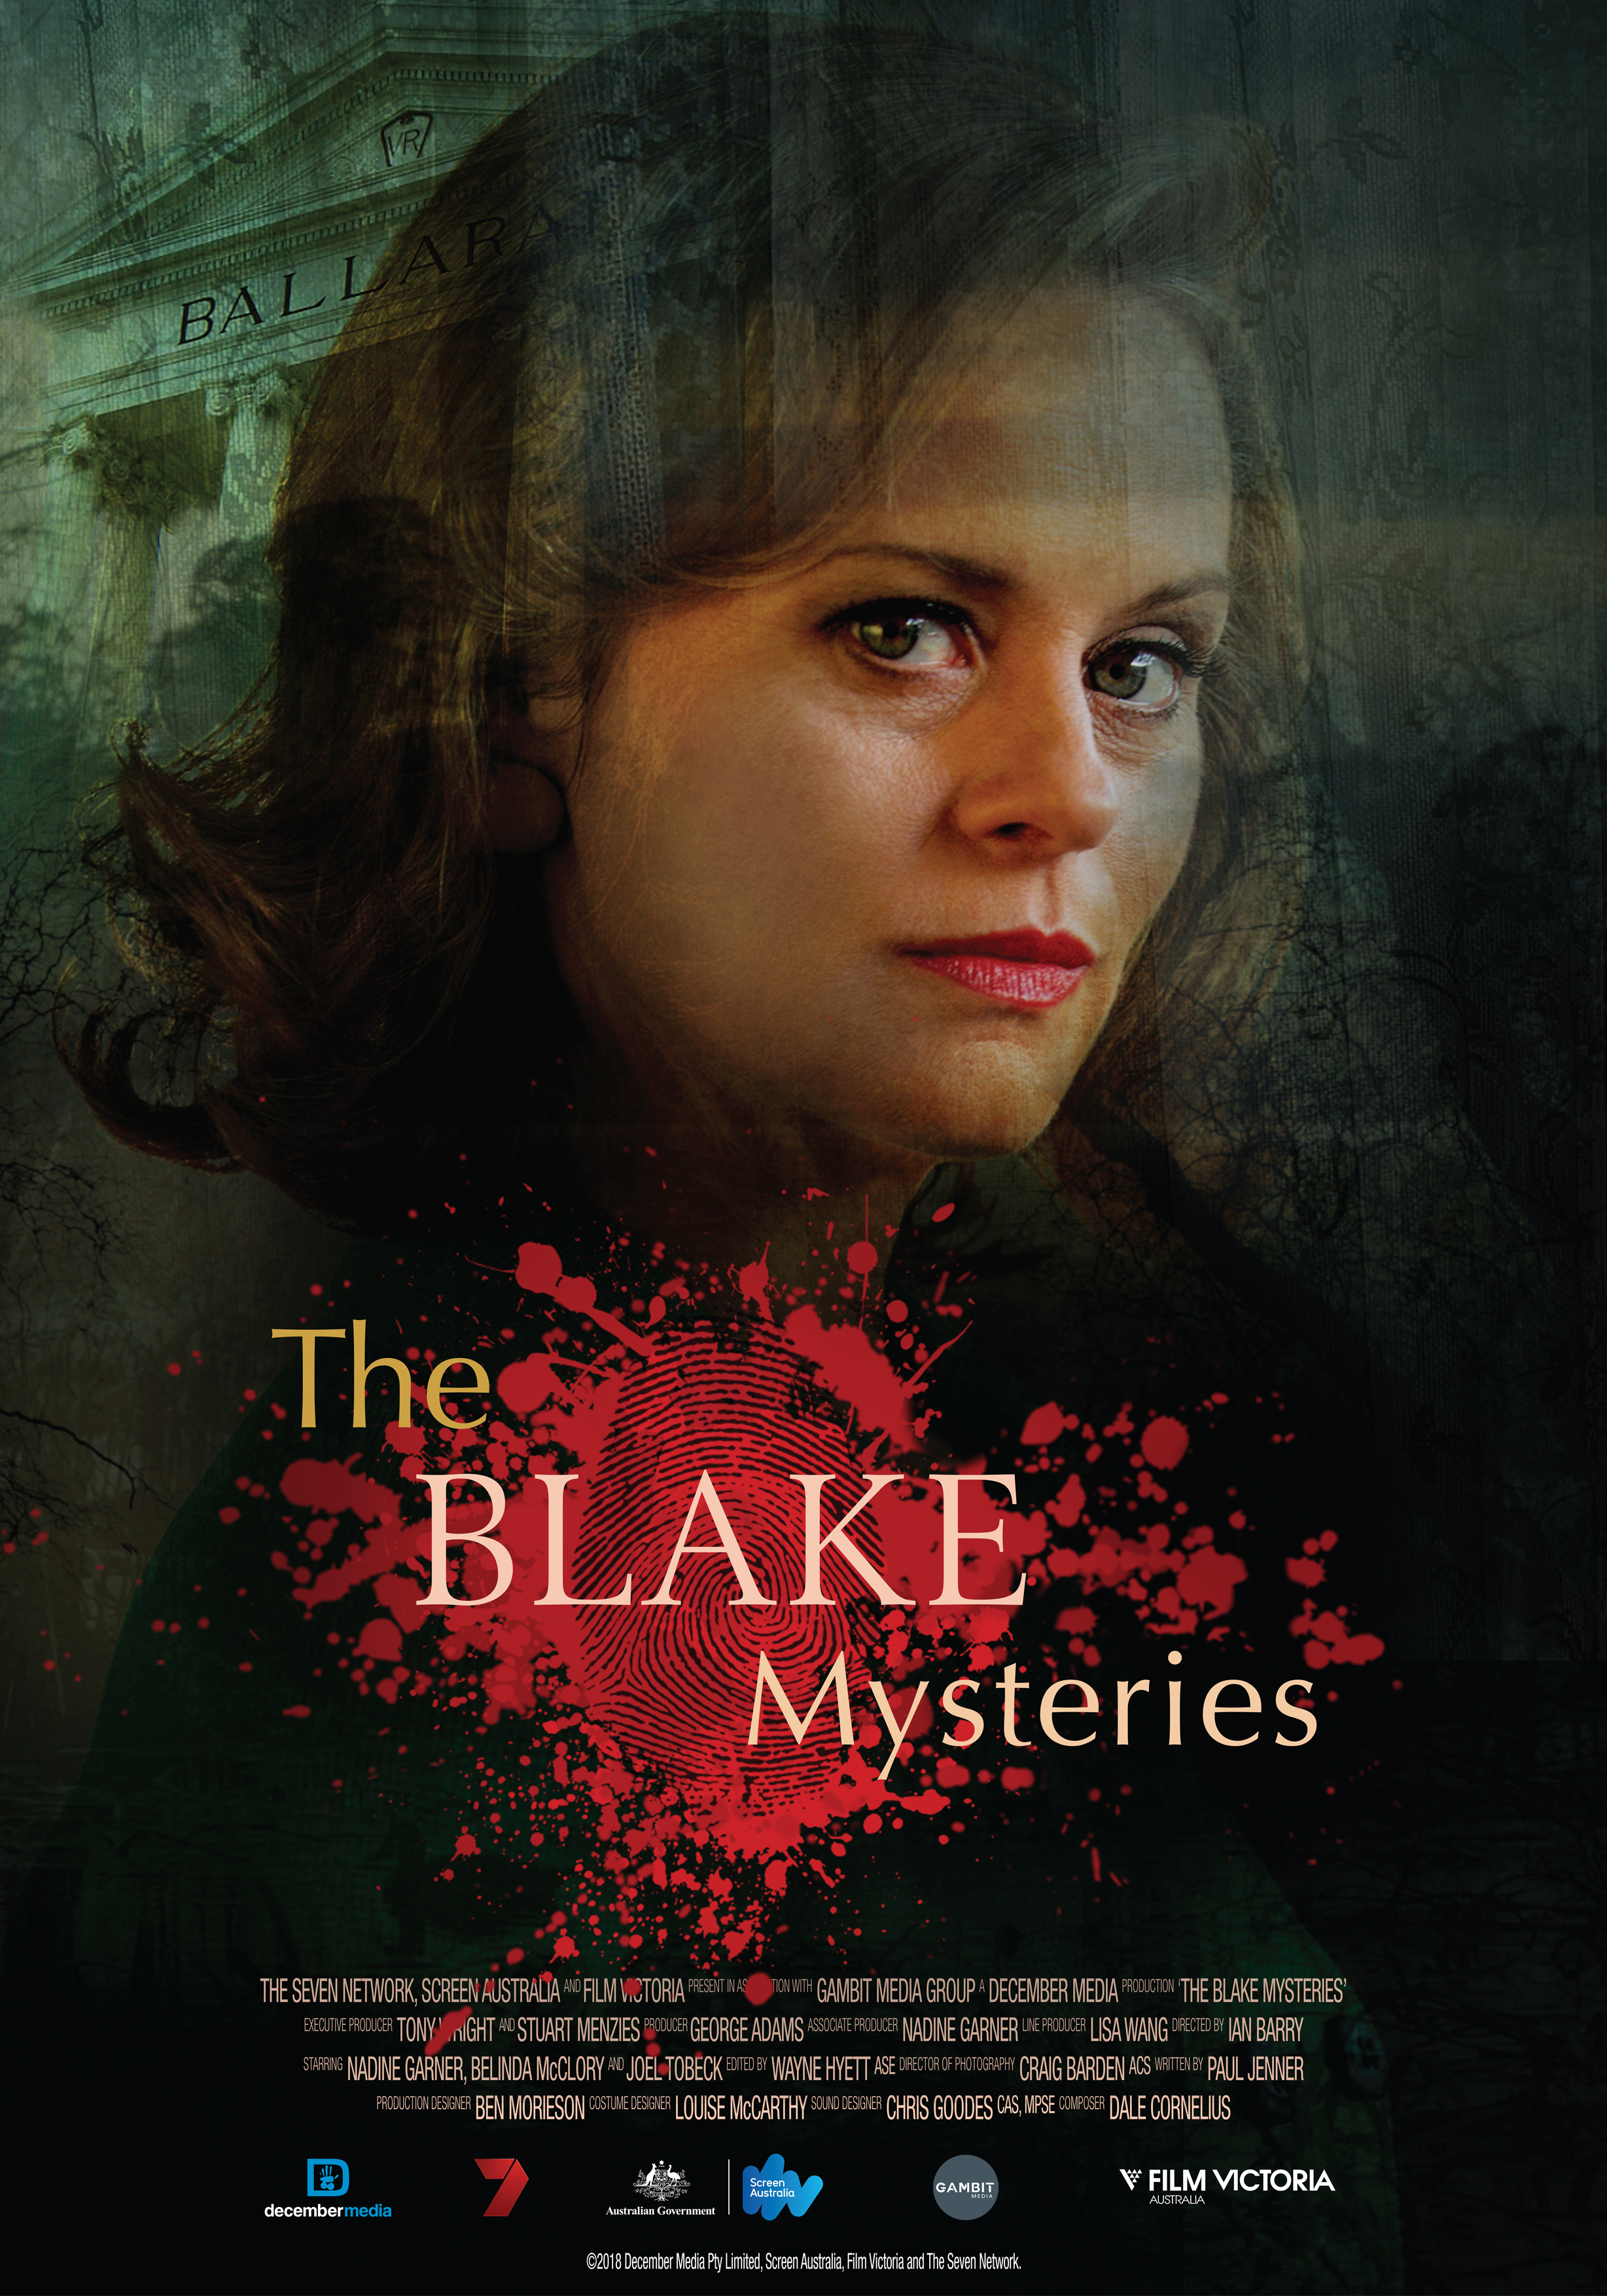 The Blake Mysteries PILOT - 20181 x 60 minDrama TelemovieDecember Media/Channel 7It's been almost three years since we last saw Jean and a hell of a lot has happened in that time. Jean and Blake were married for only 18 months when Blake went missing. Since then Jean has taken on her husband's mantle as, a solver of mysteries. Murder, mayhem and Jean Blake are a potent mix and anything can and will happen.